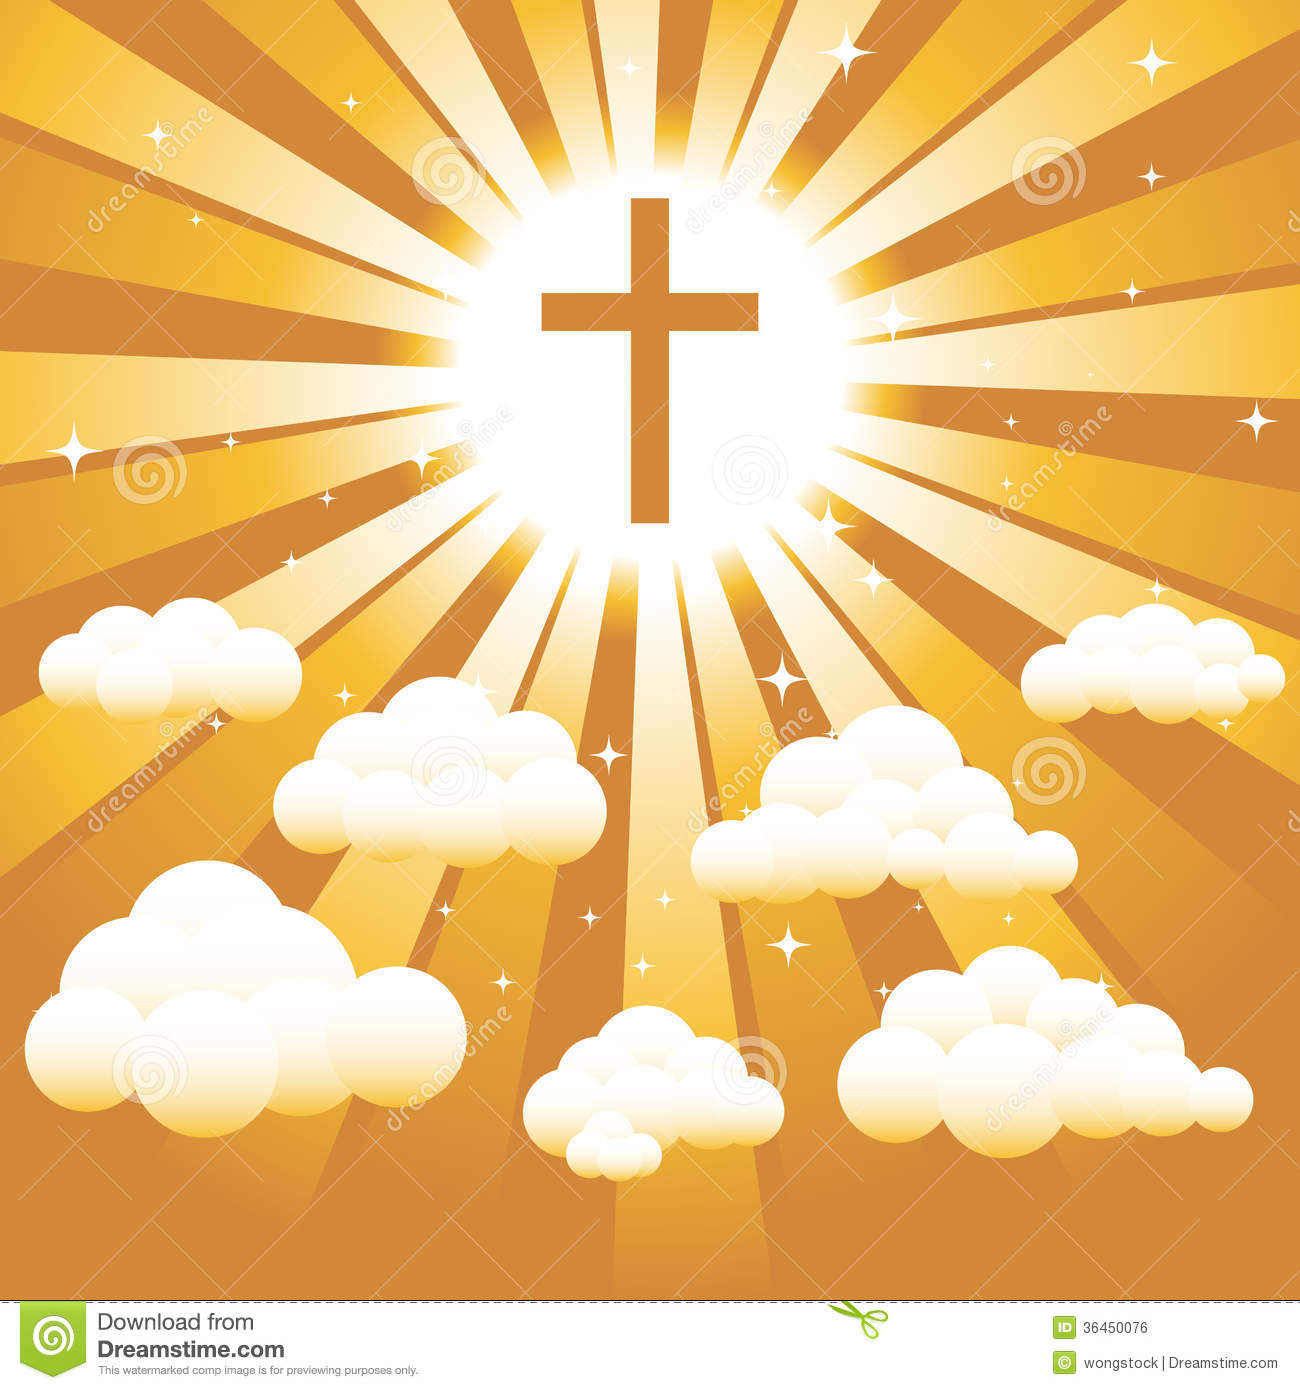 Christian Cross In The Sky Royalty Free Stock Image.